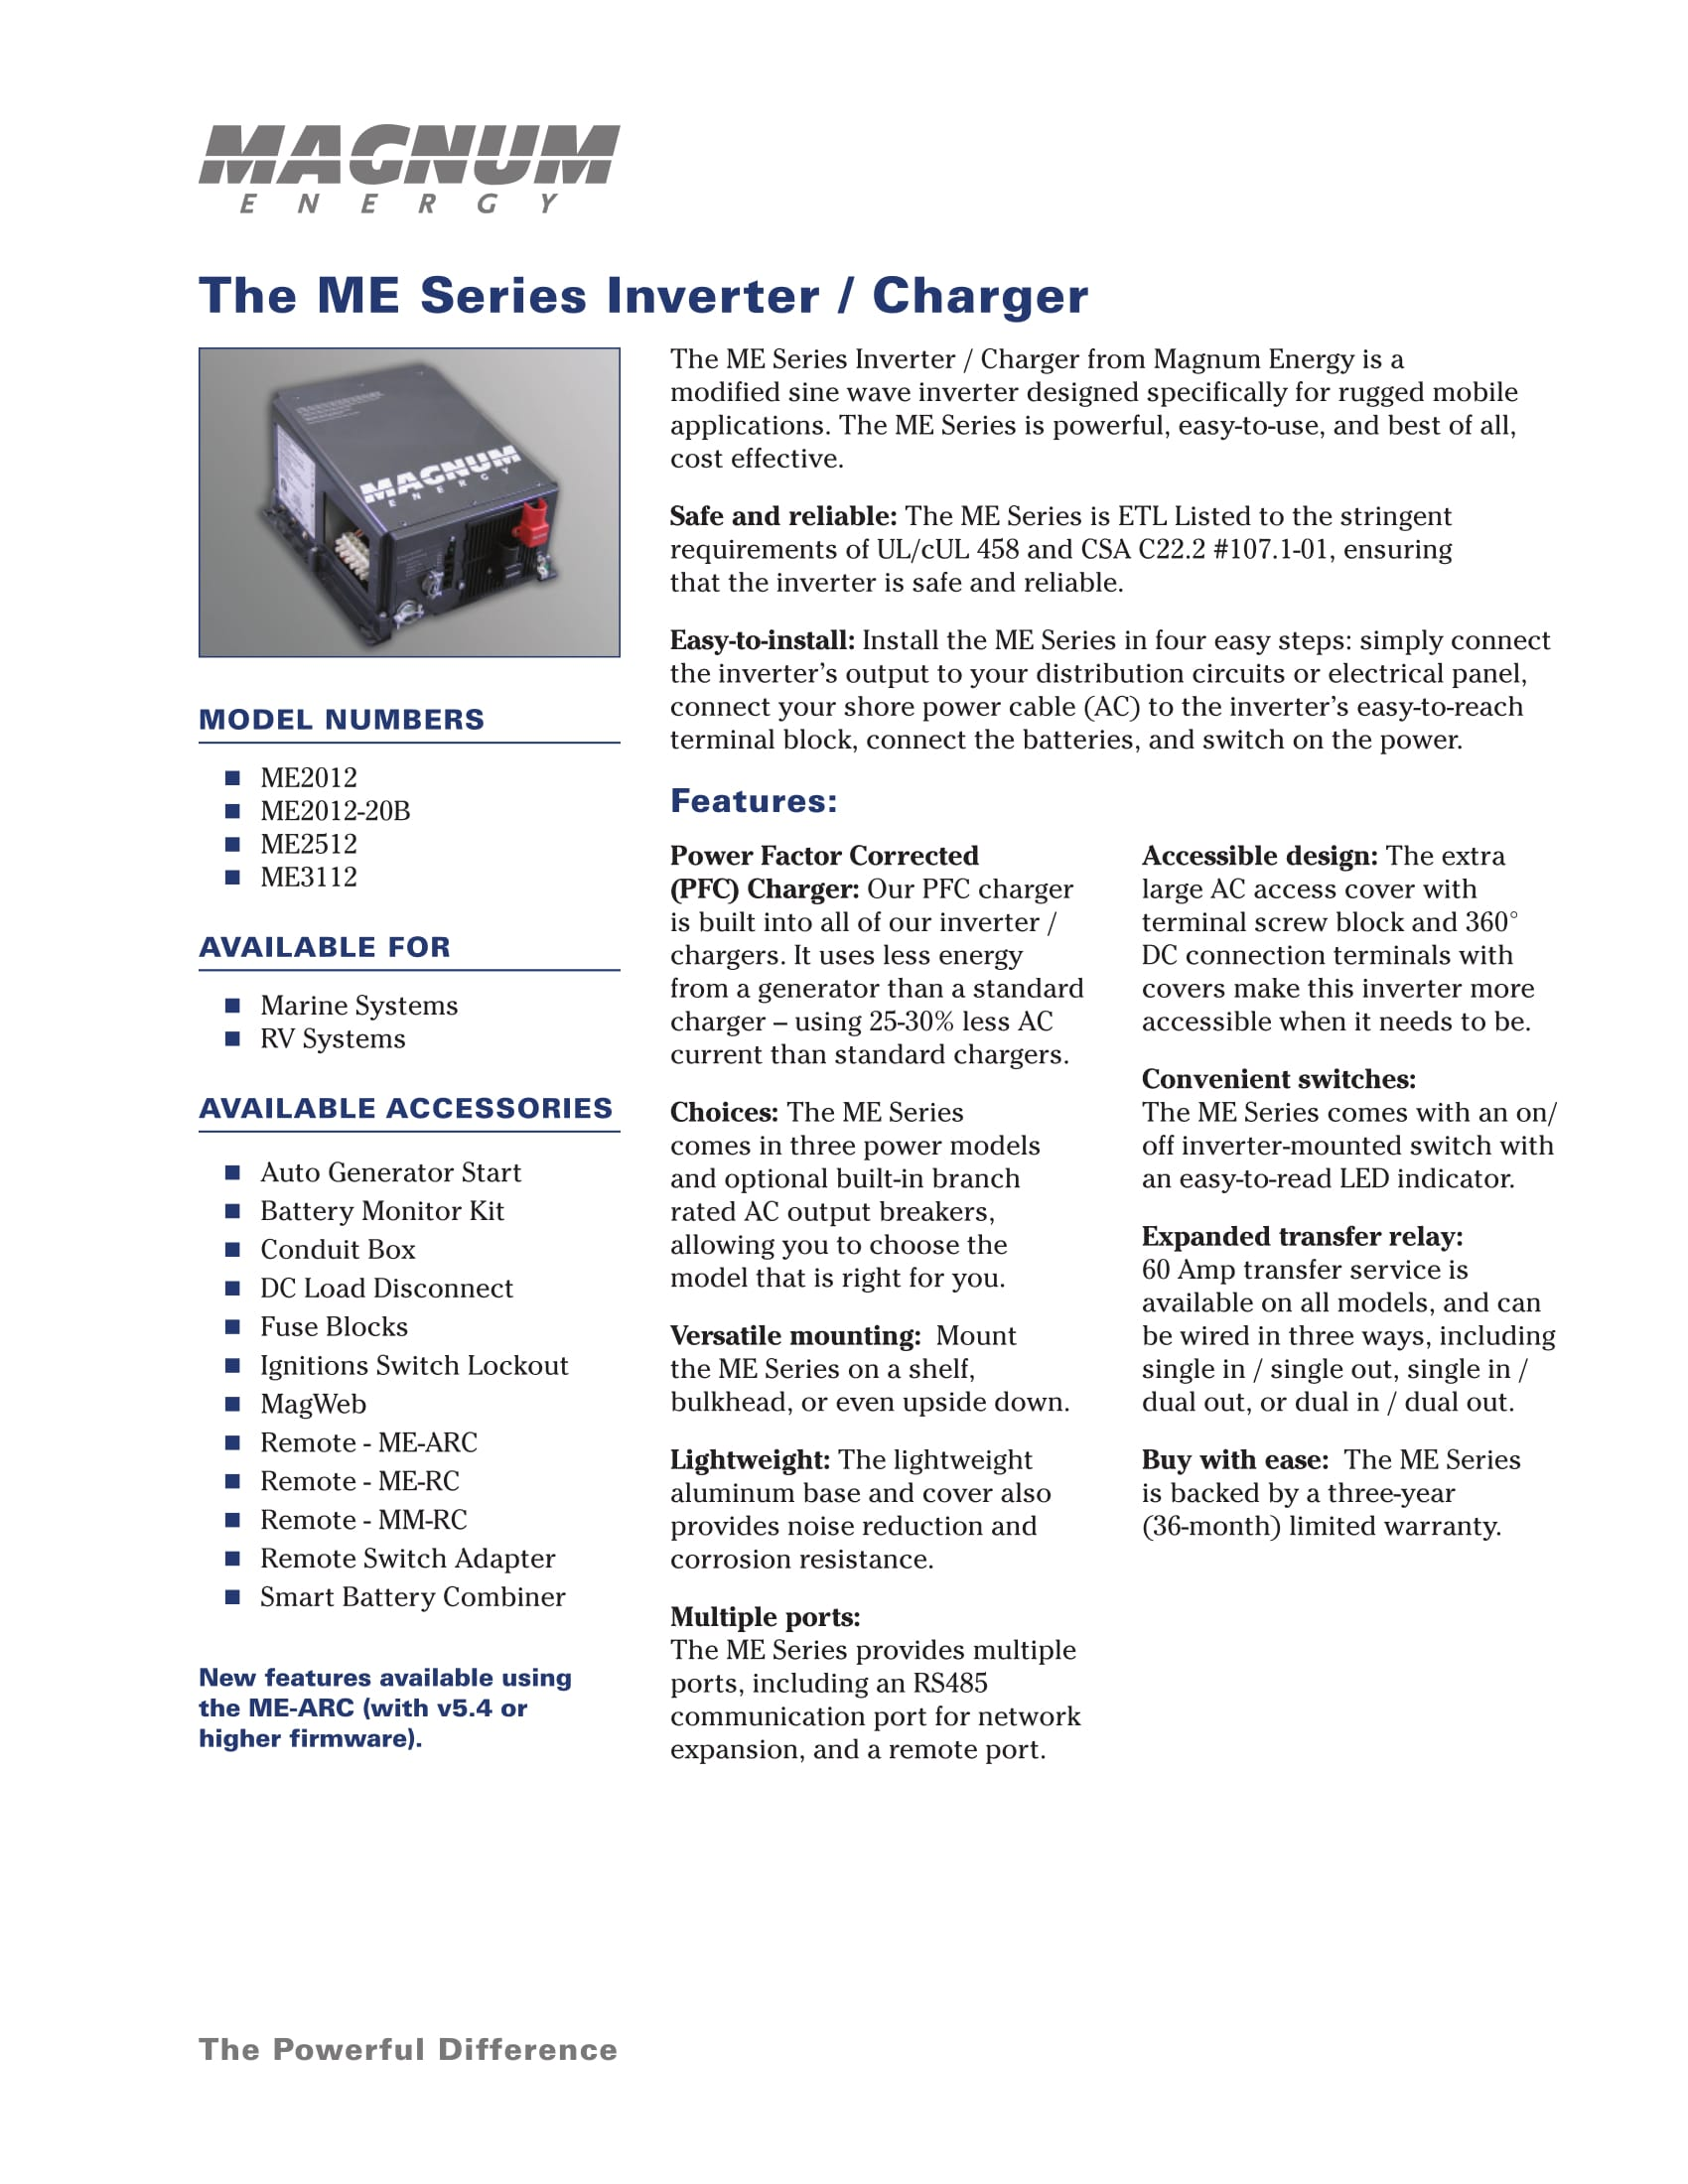 Magnum Energy Me2512 Inverter Led Indicator For Remote Ac Loads Introducing The Me Series Charger From Is Powerful And Cost Effective A New Generation It Designed